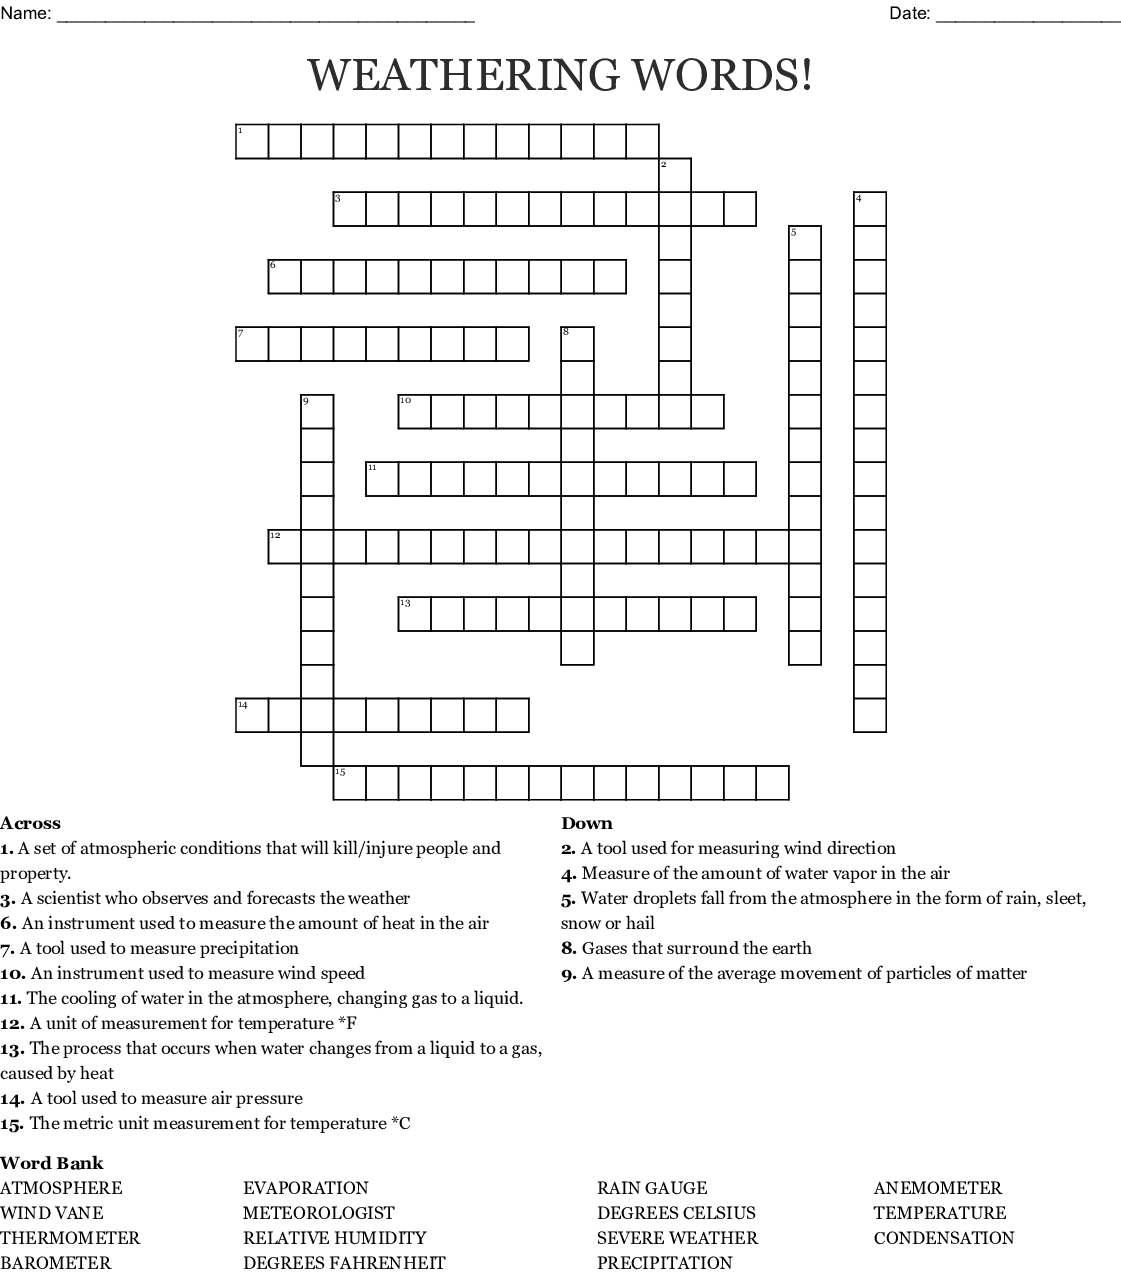 Weathering Words Crossword